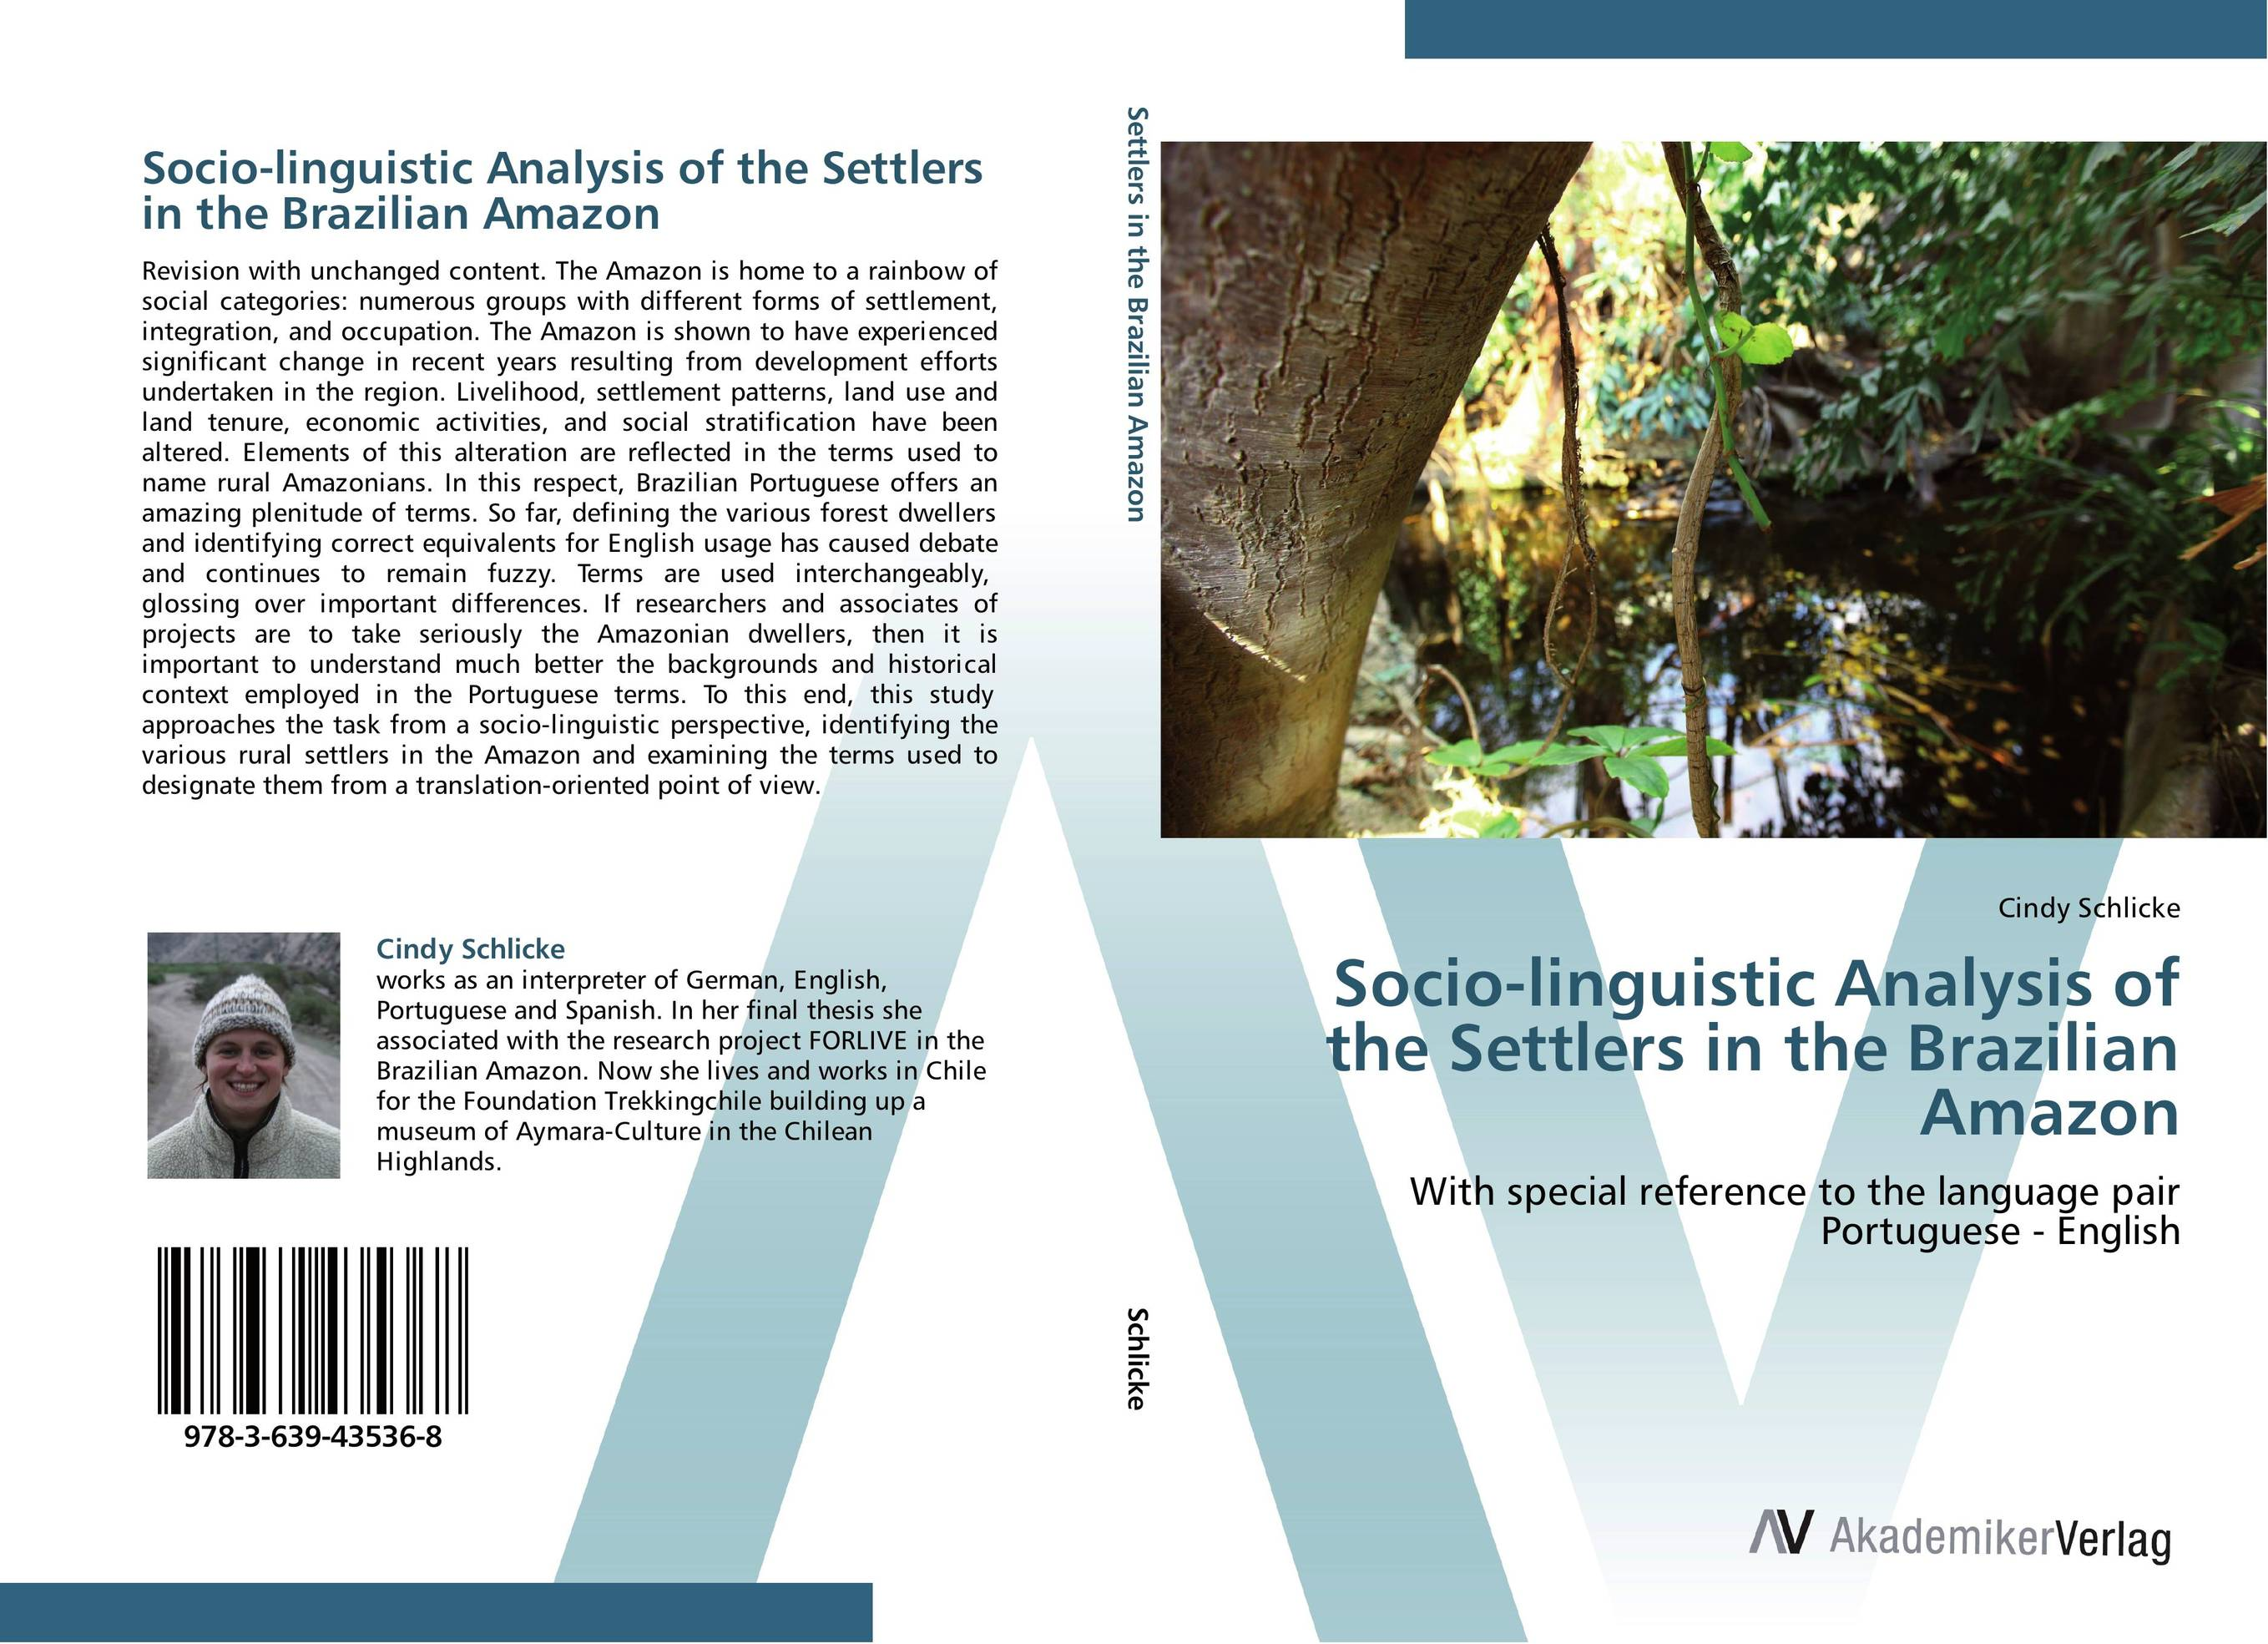 Socio-linguistic Analysis of the Settlers in the Brazilian Amazon